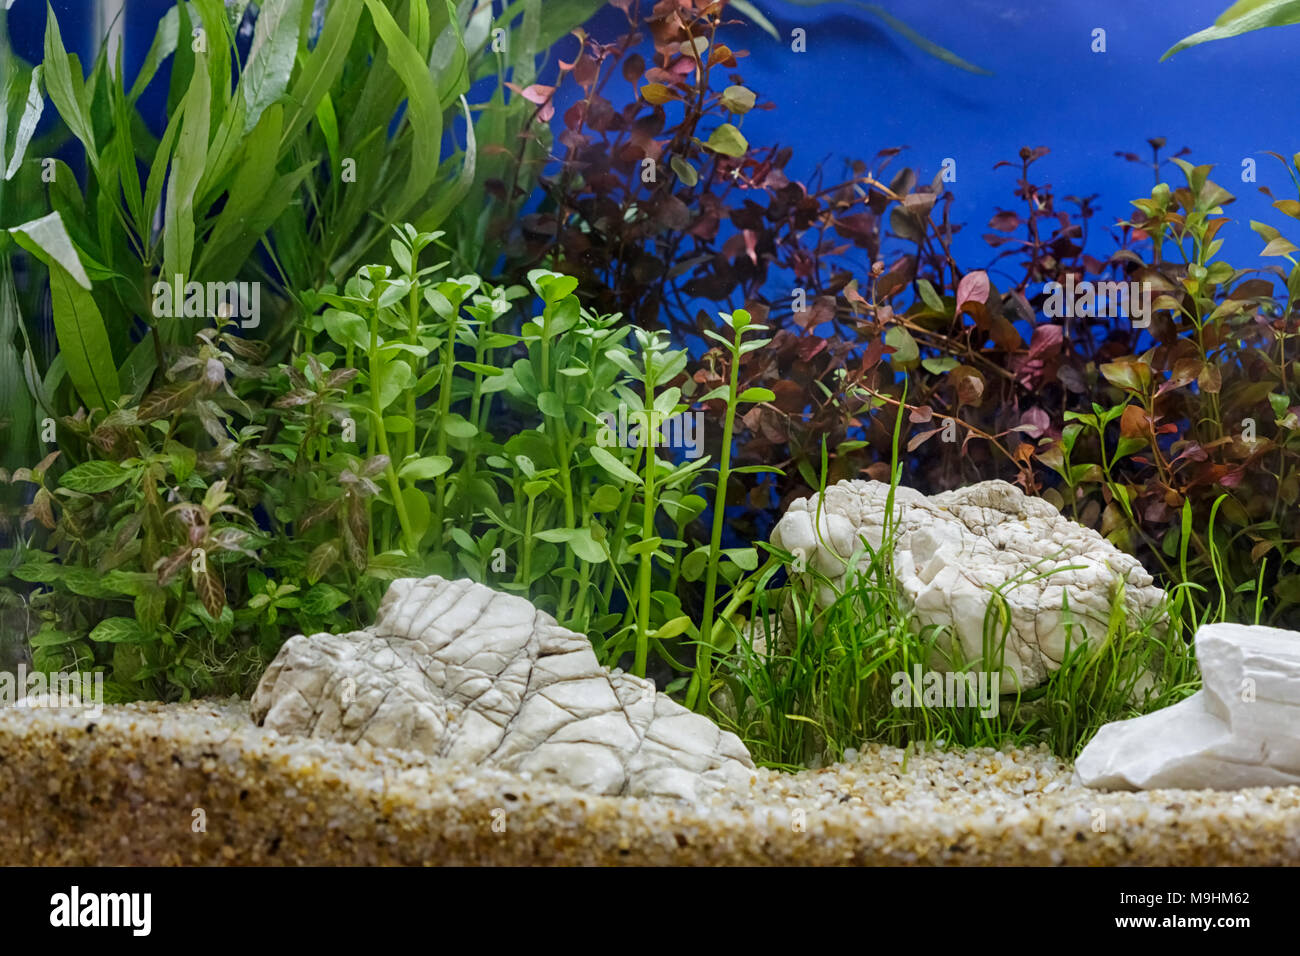 aquarium pflanzen dekoration aquatische farn und aquarium pflanzenwachstum im aquarium tank. Black Bedroom Furniture Sets. Home Design Ideas